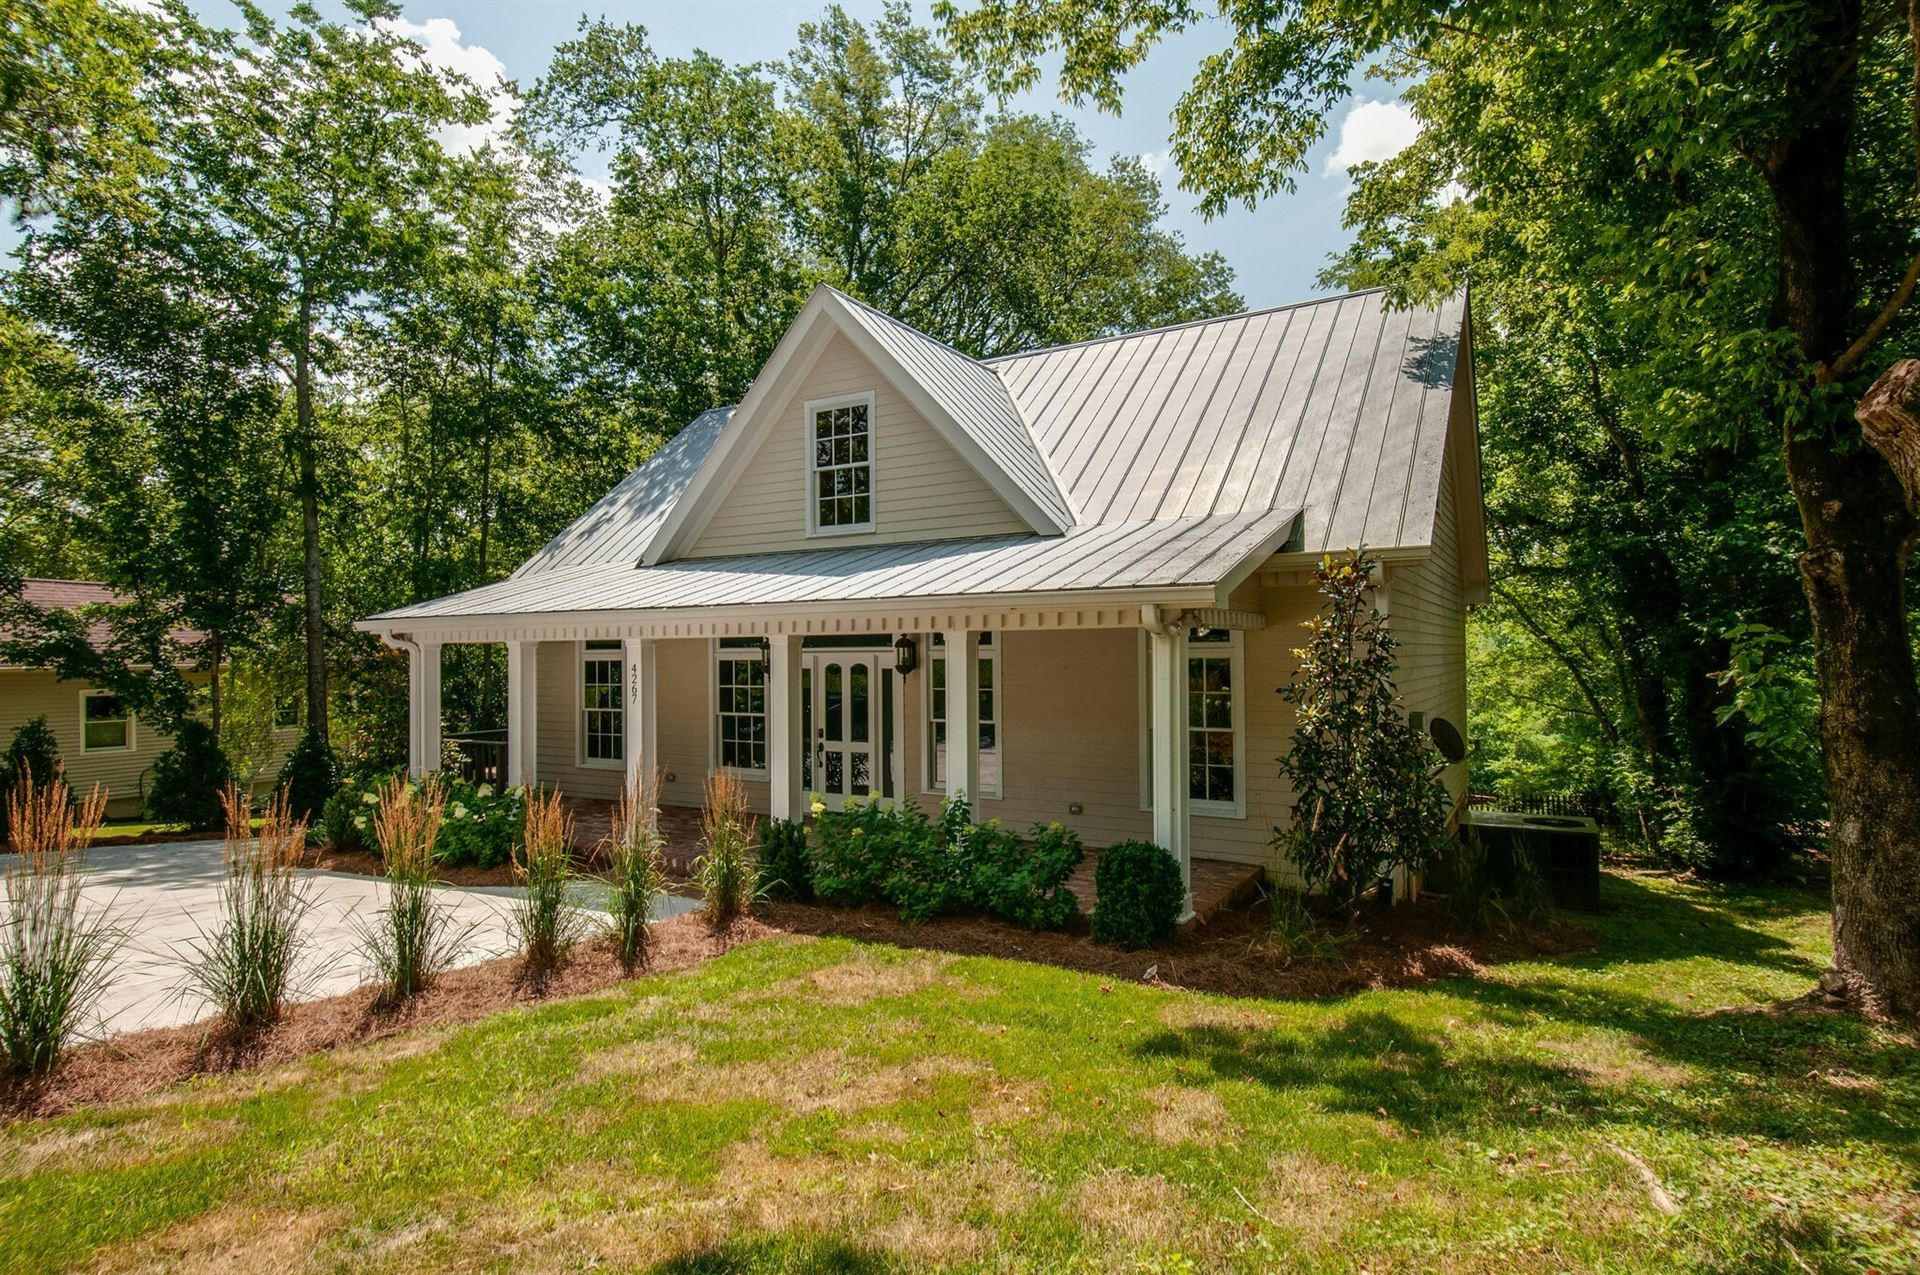 Photo of 4267 Old Hillsboro Rd, Franklin, TN 37064 (MLS # 2218275)